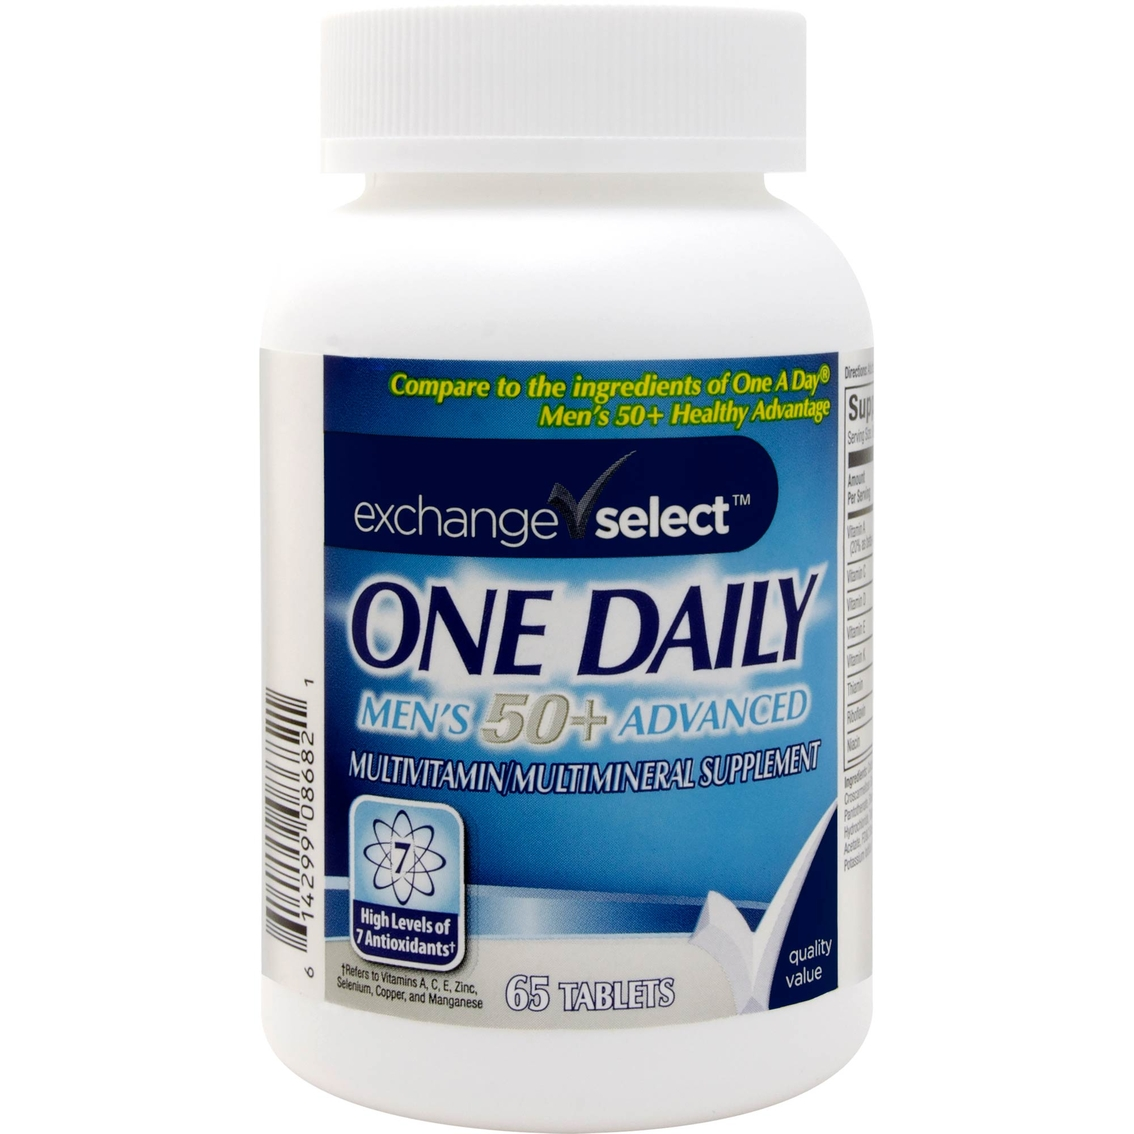 Exchange Select One Daily Men S 50 Multivitamin Multimineral Tablet 65 Ct Vitamins Beauty Health Shop The Exchange